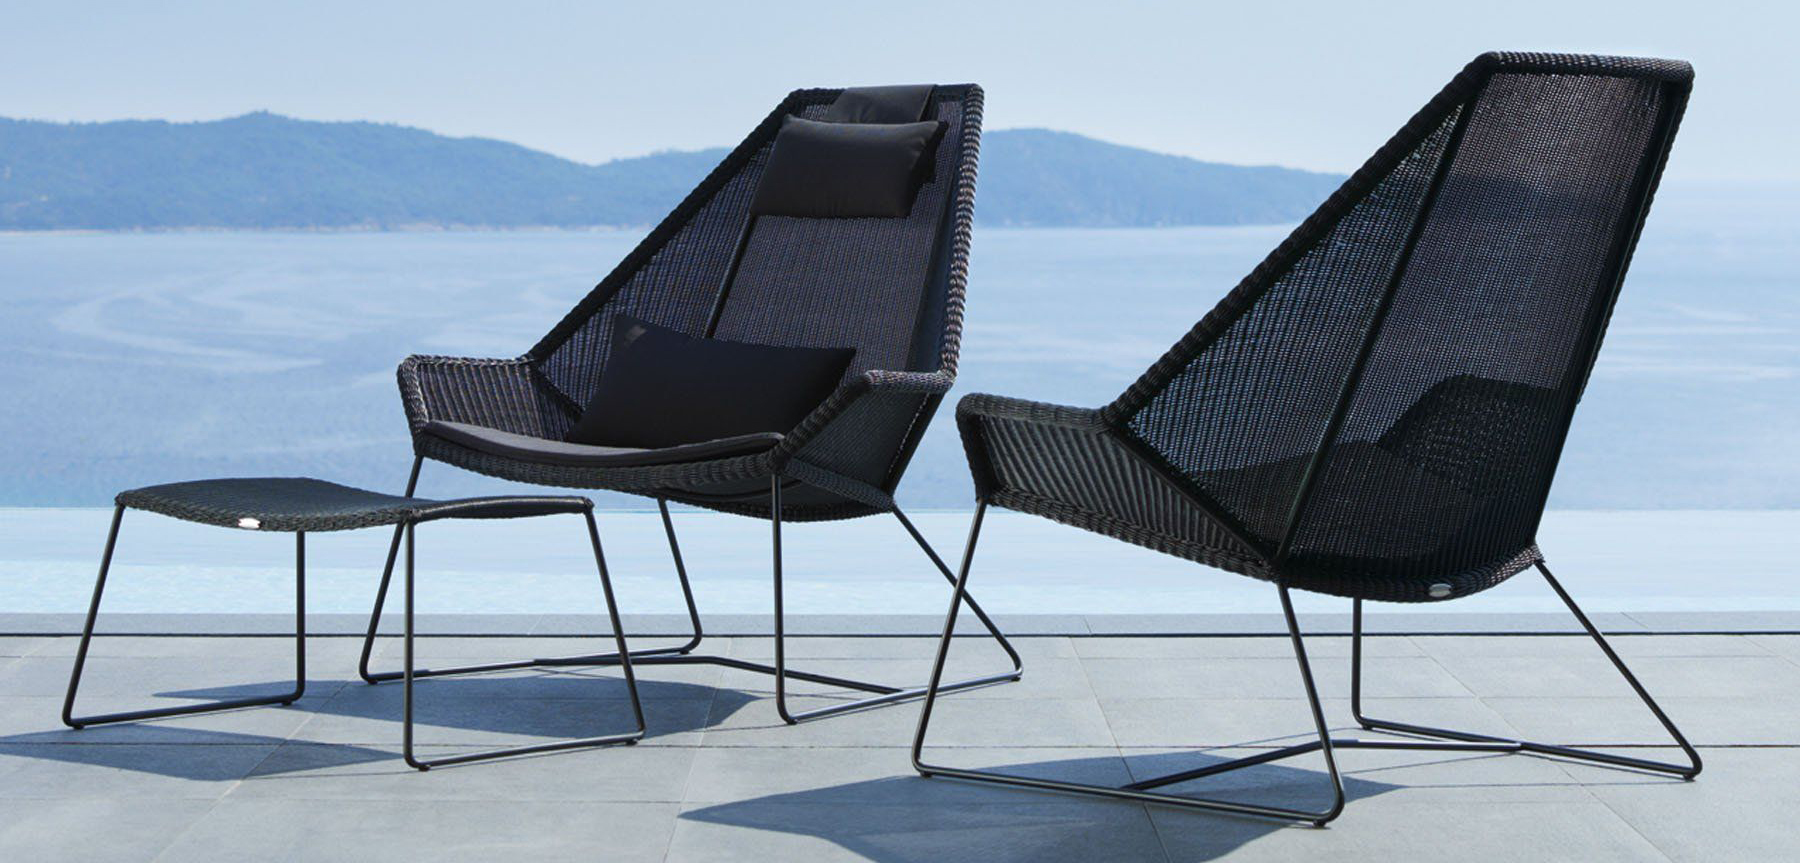 cane-line breeze high back outdoor lounge chair lifestyle image